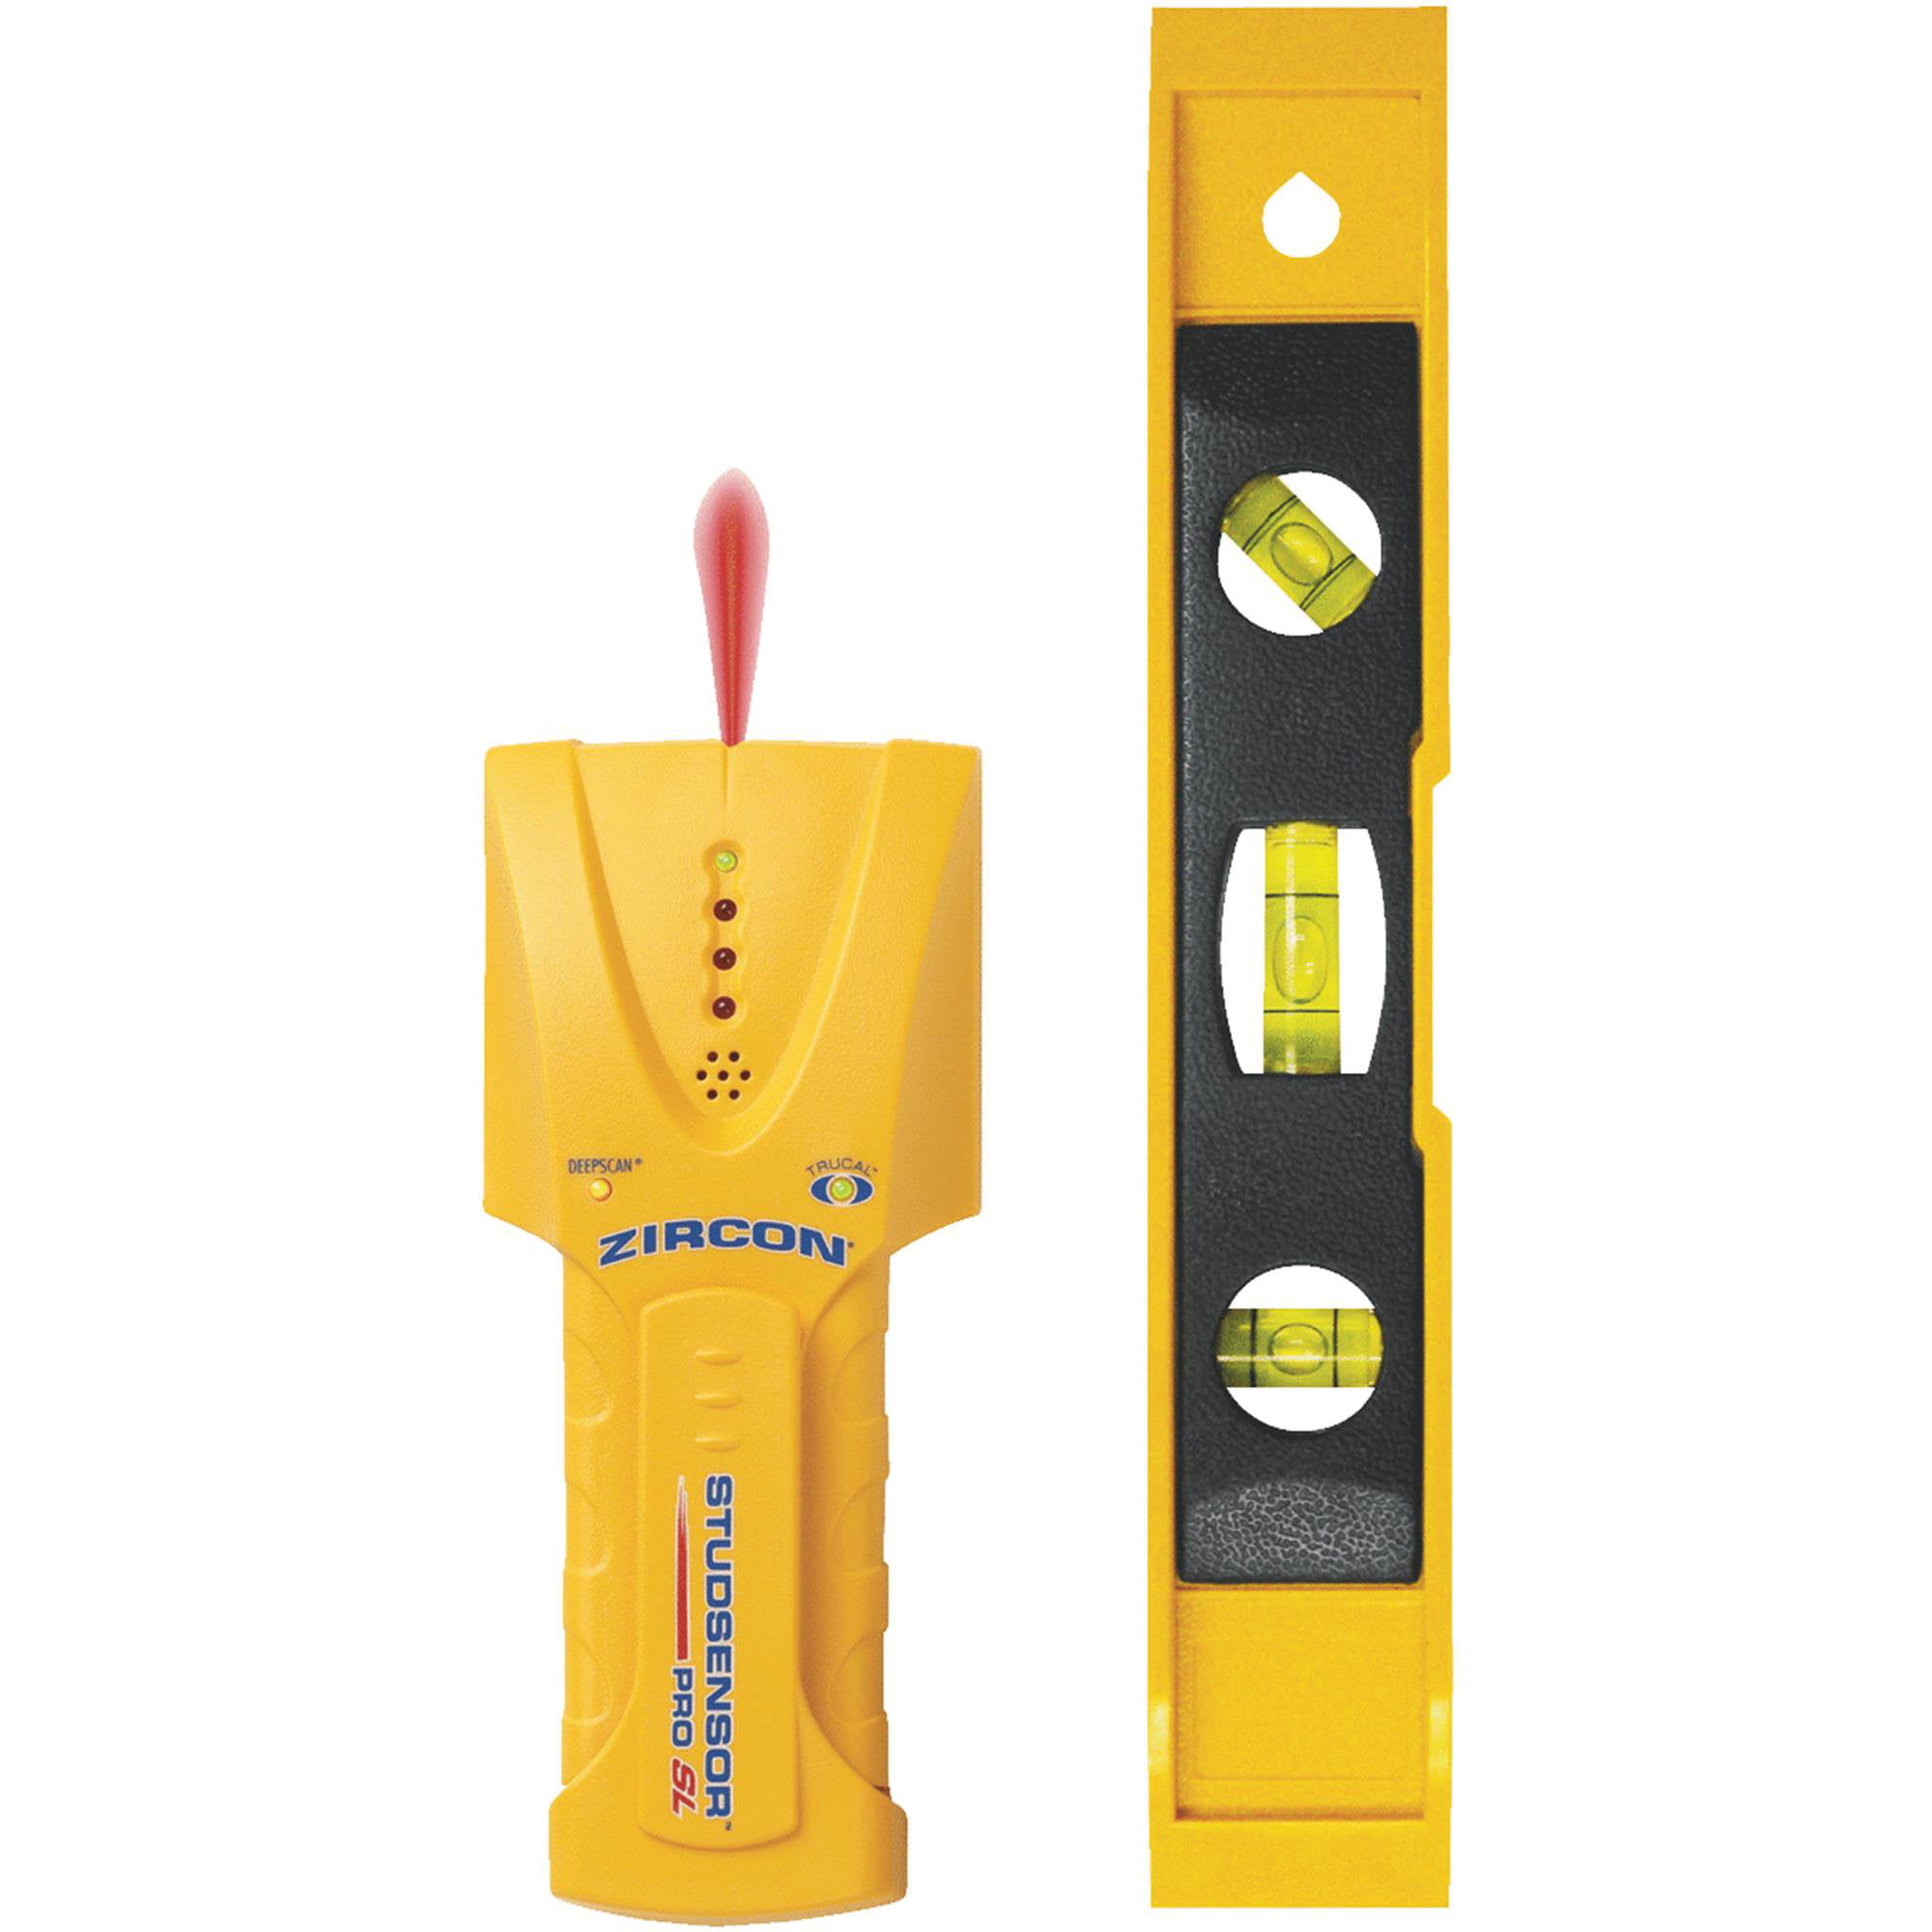 Zircon StudSensor Pro SL Stud Finder with Level by Zircon